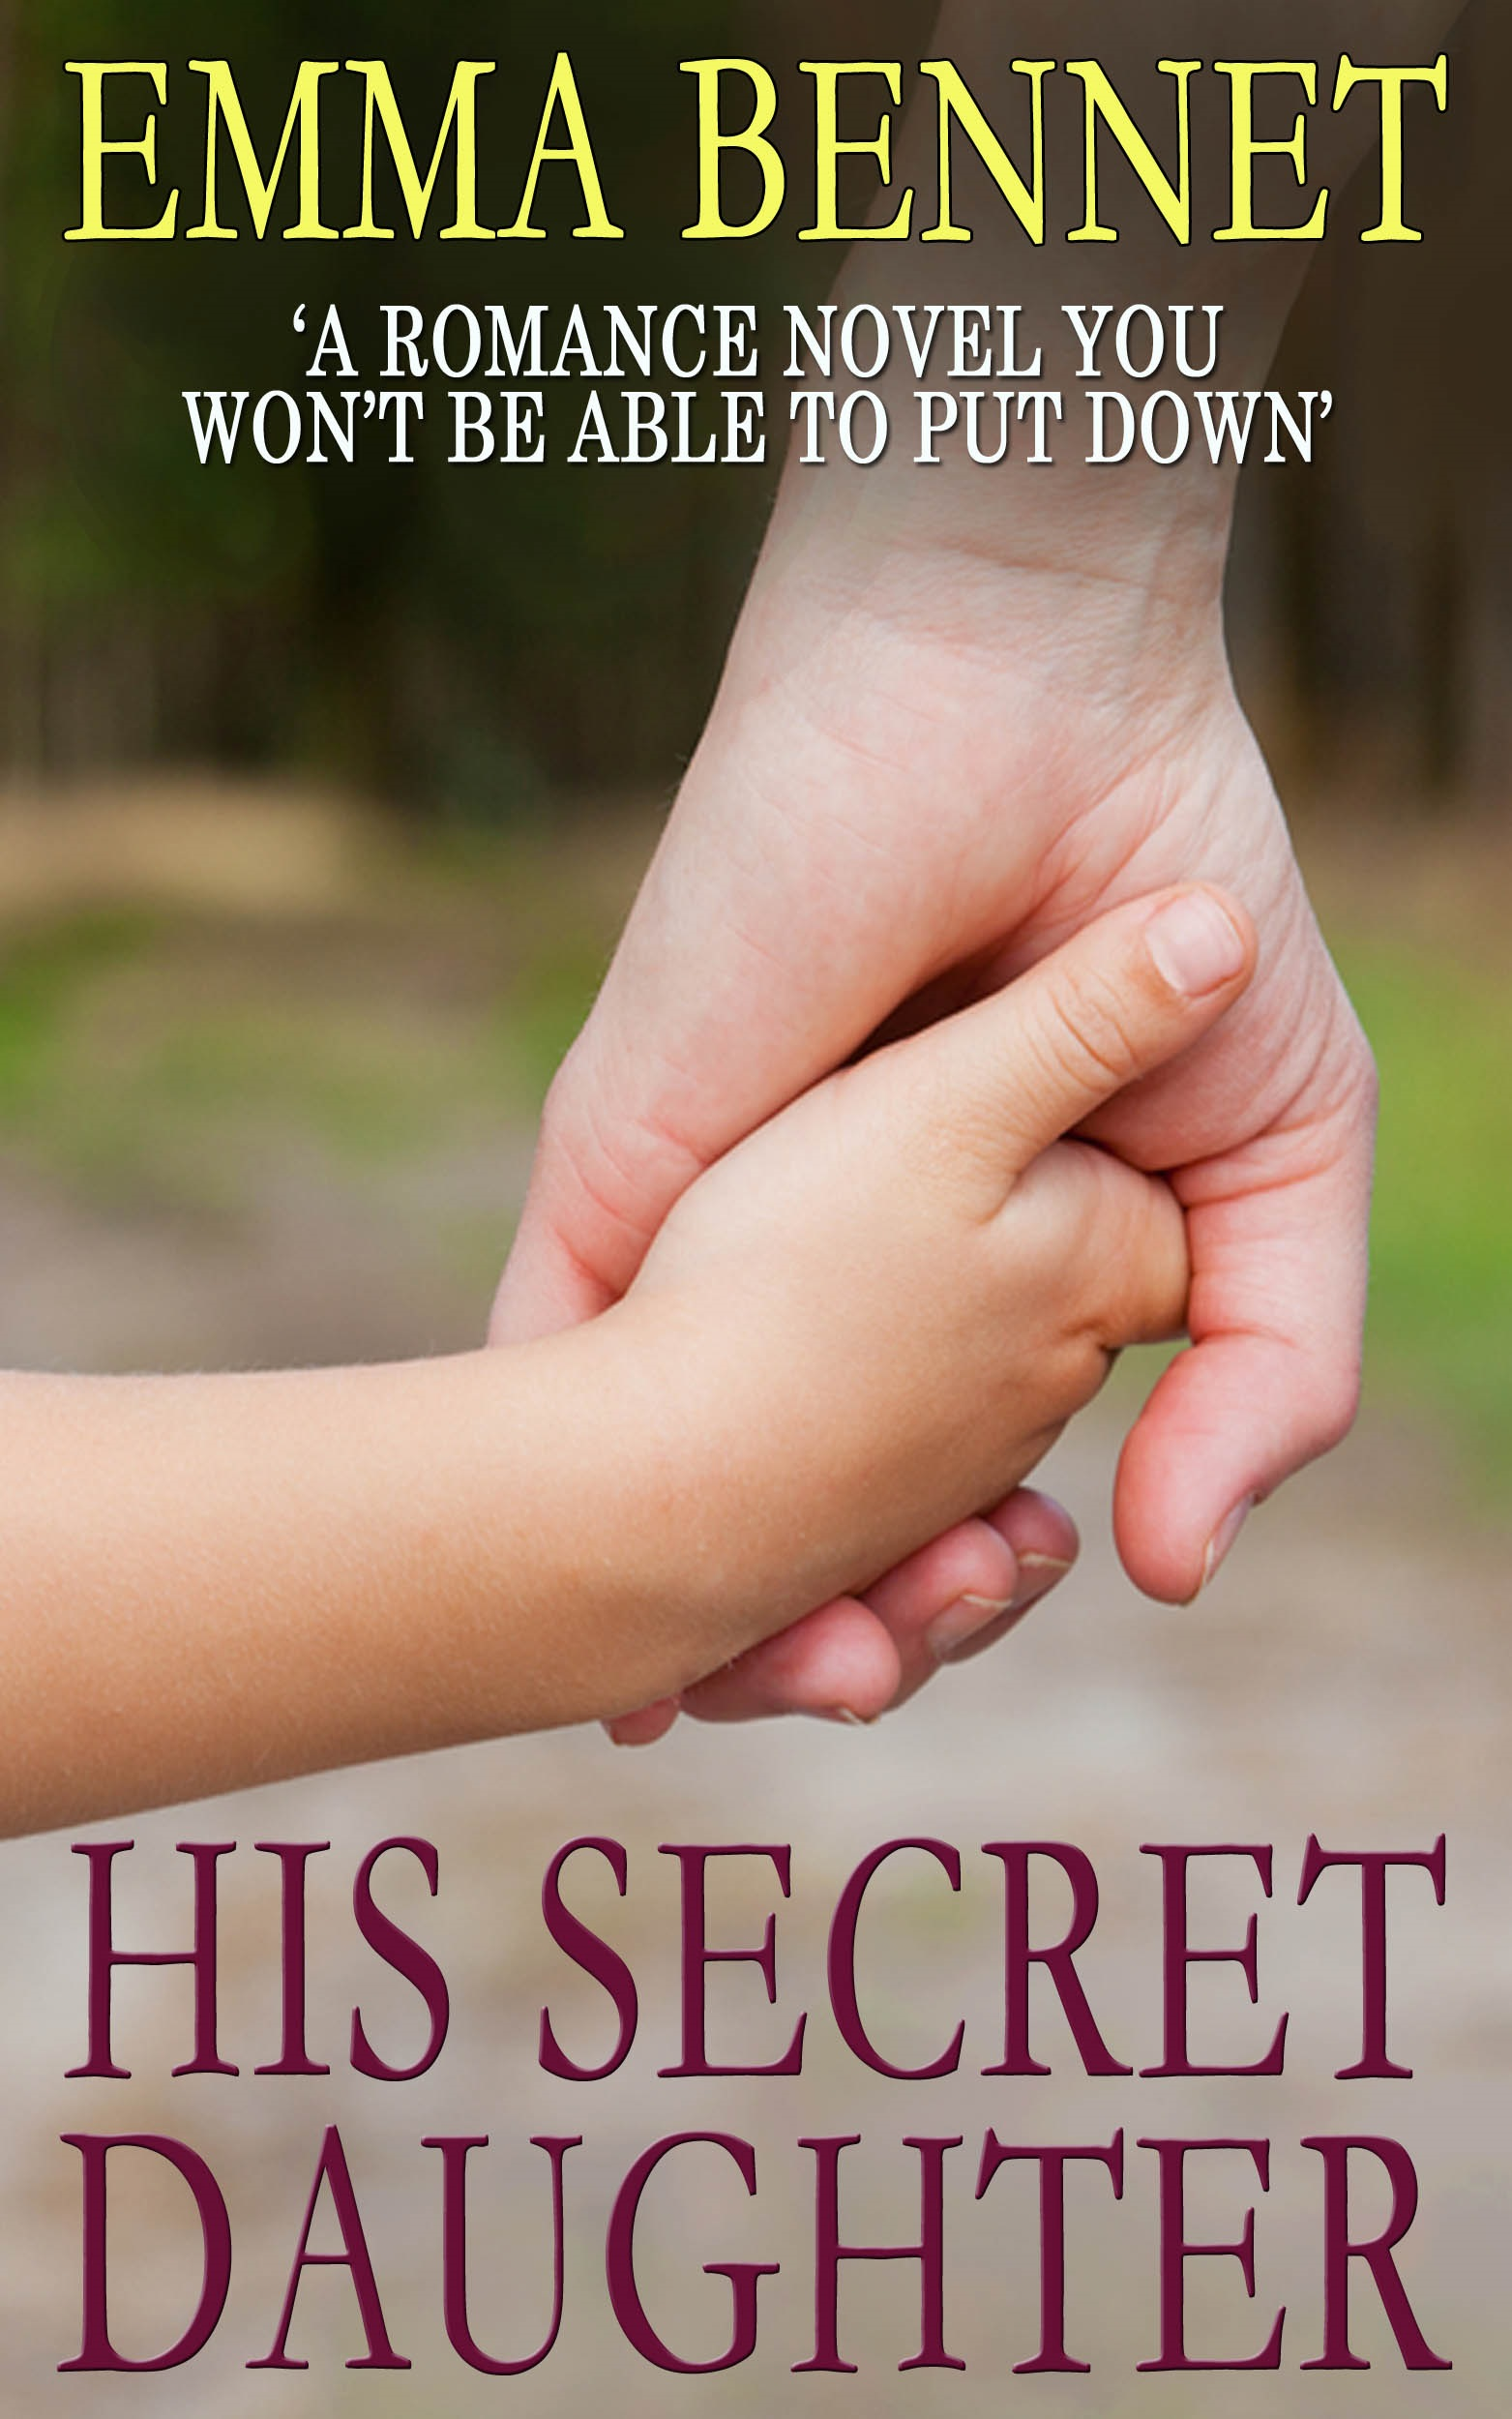 His Secret Daughter by Emma Bennet